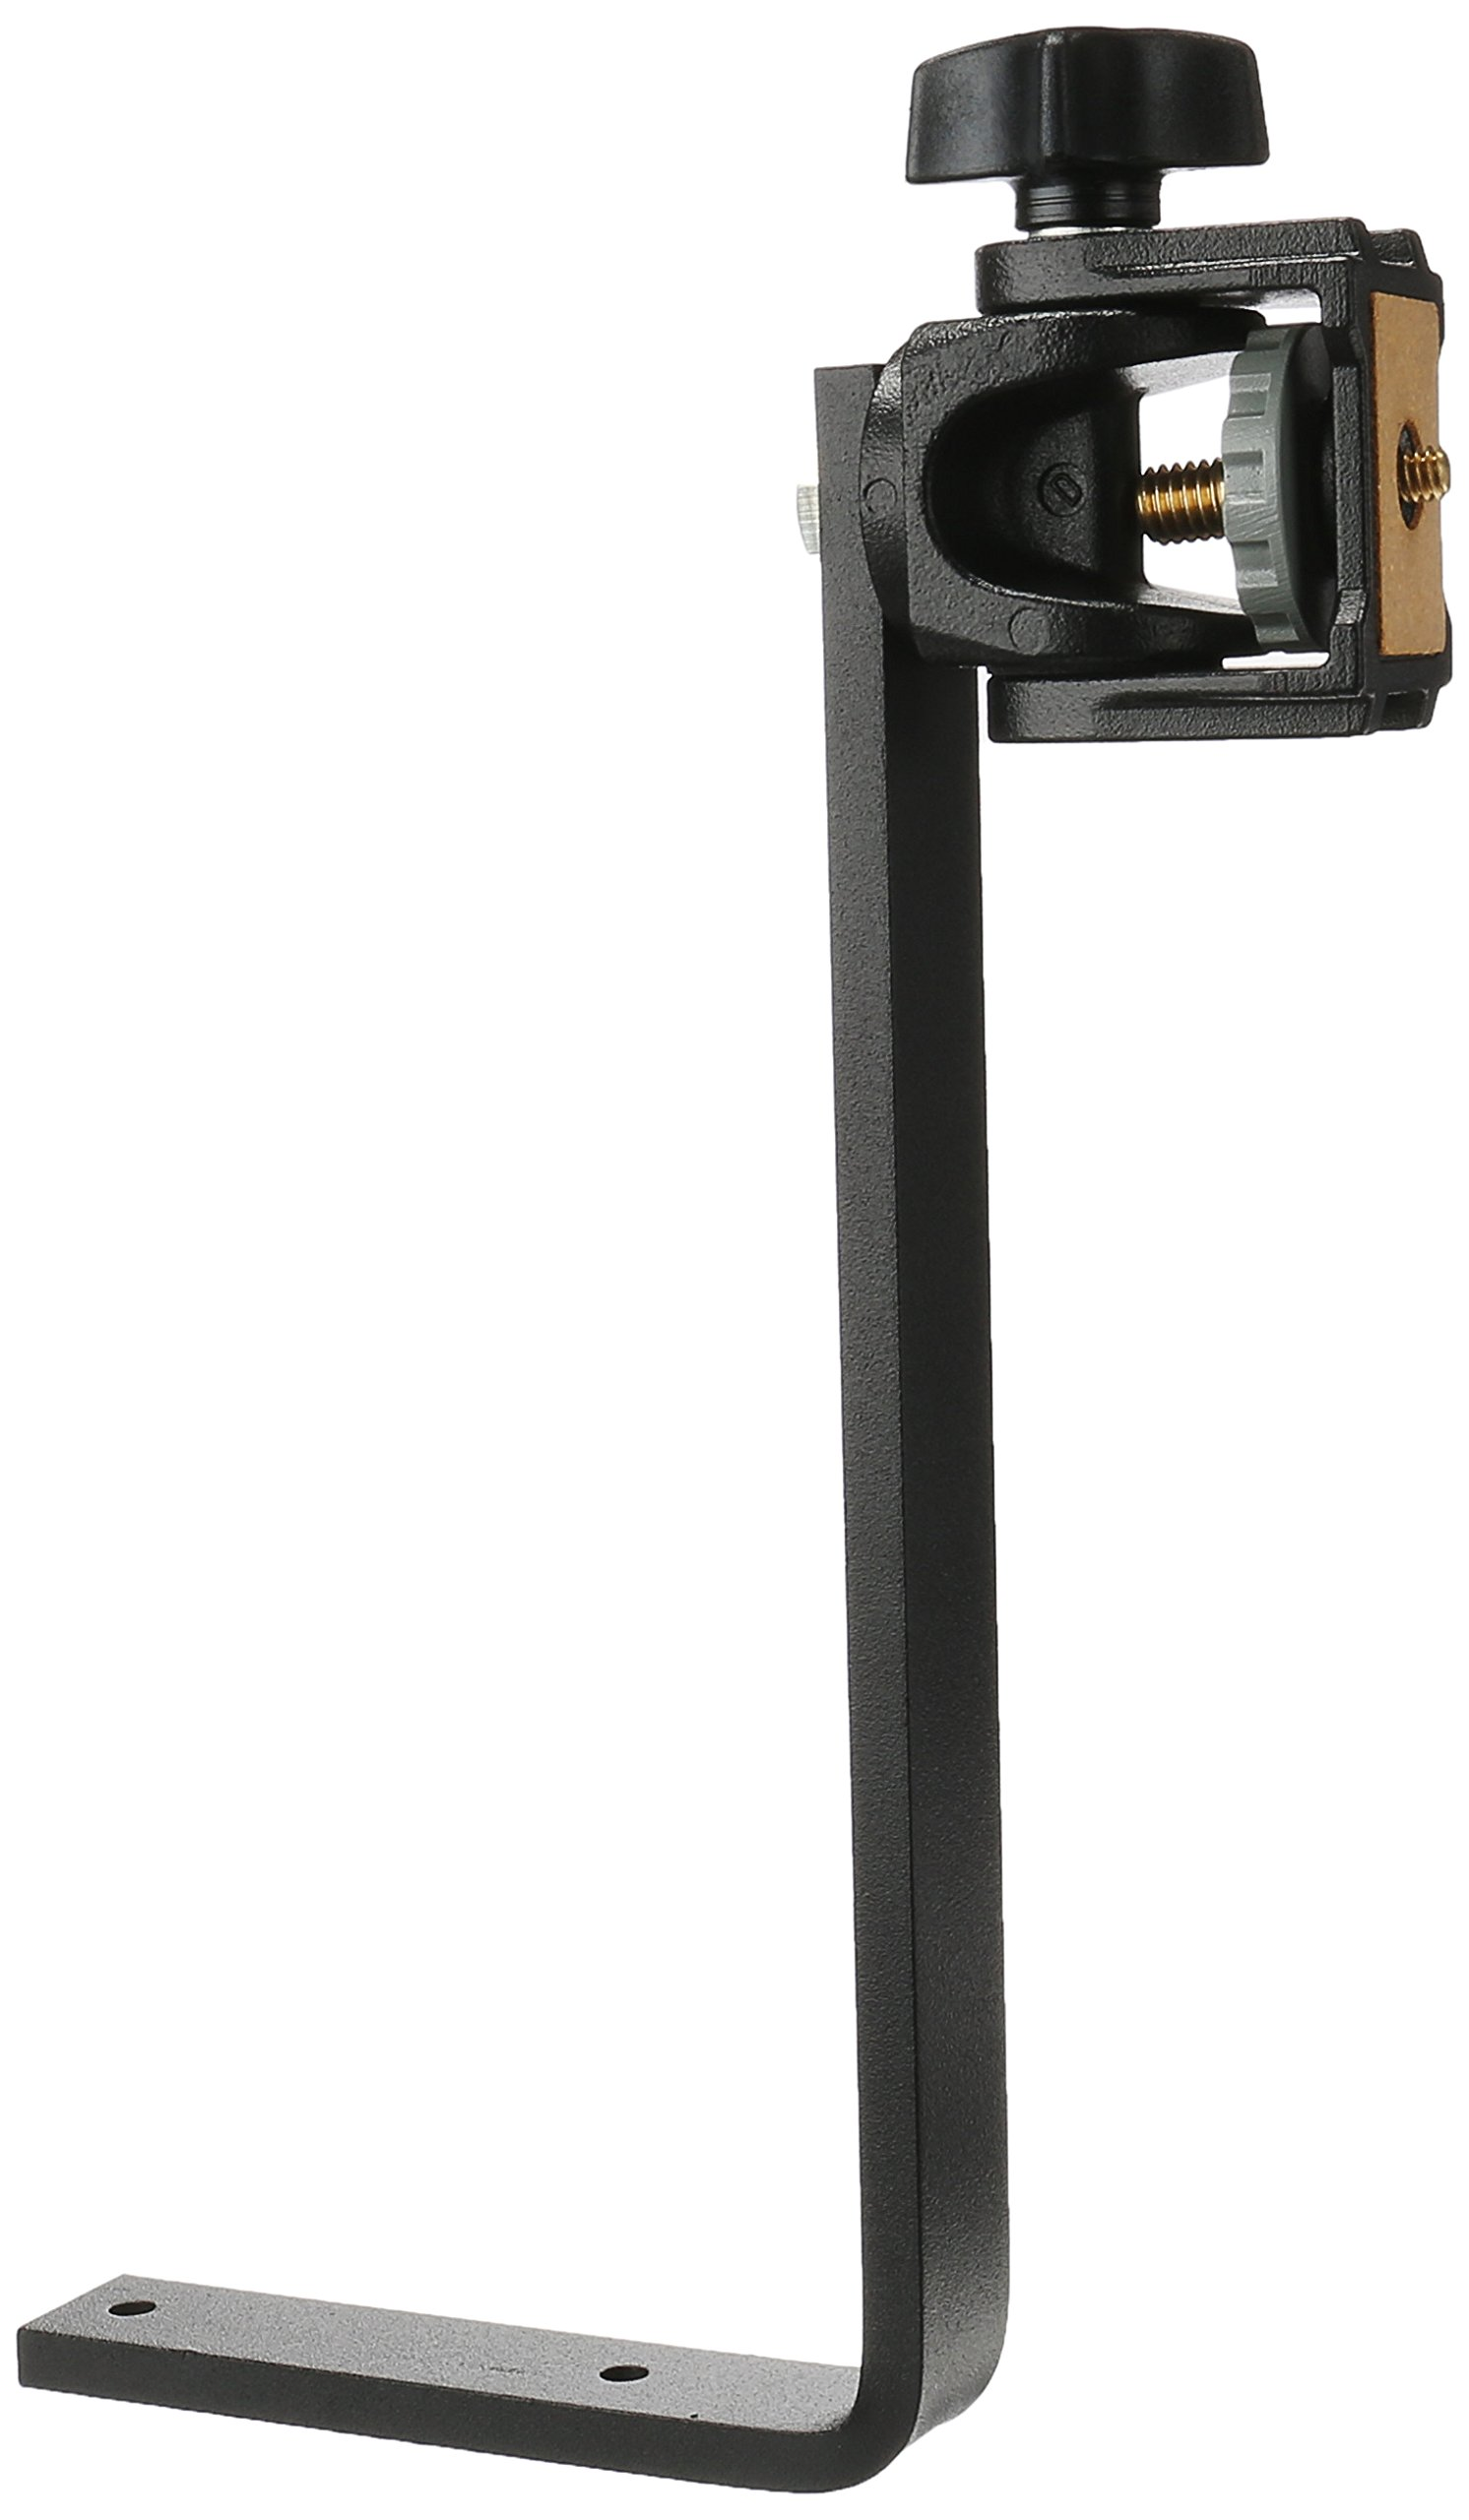 Manfrotto 356 Wall Mount Camera Support - Replaces 3277 by Manfrotto